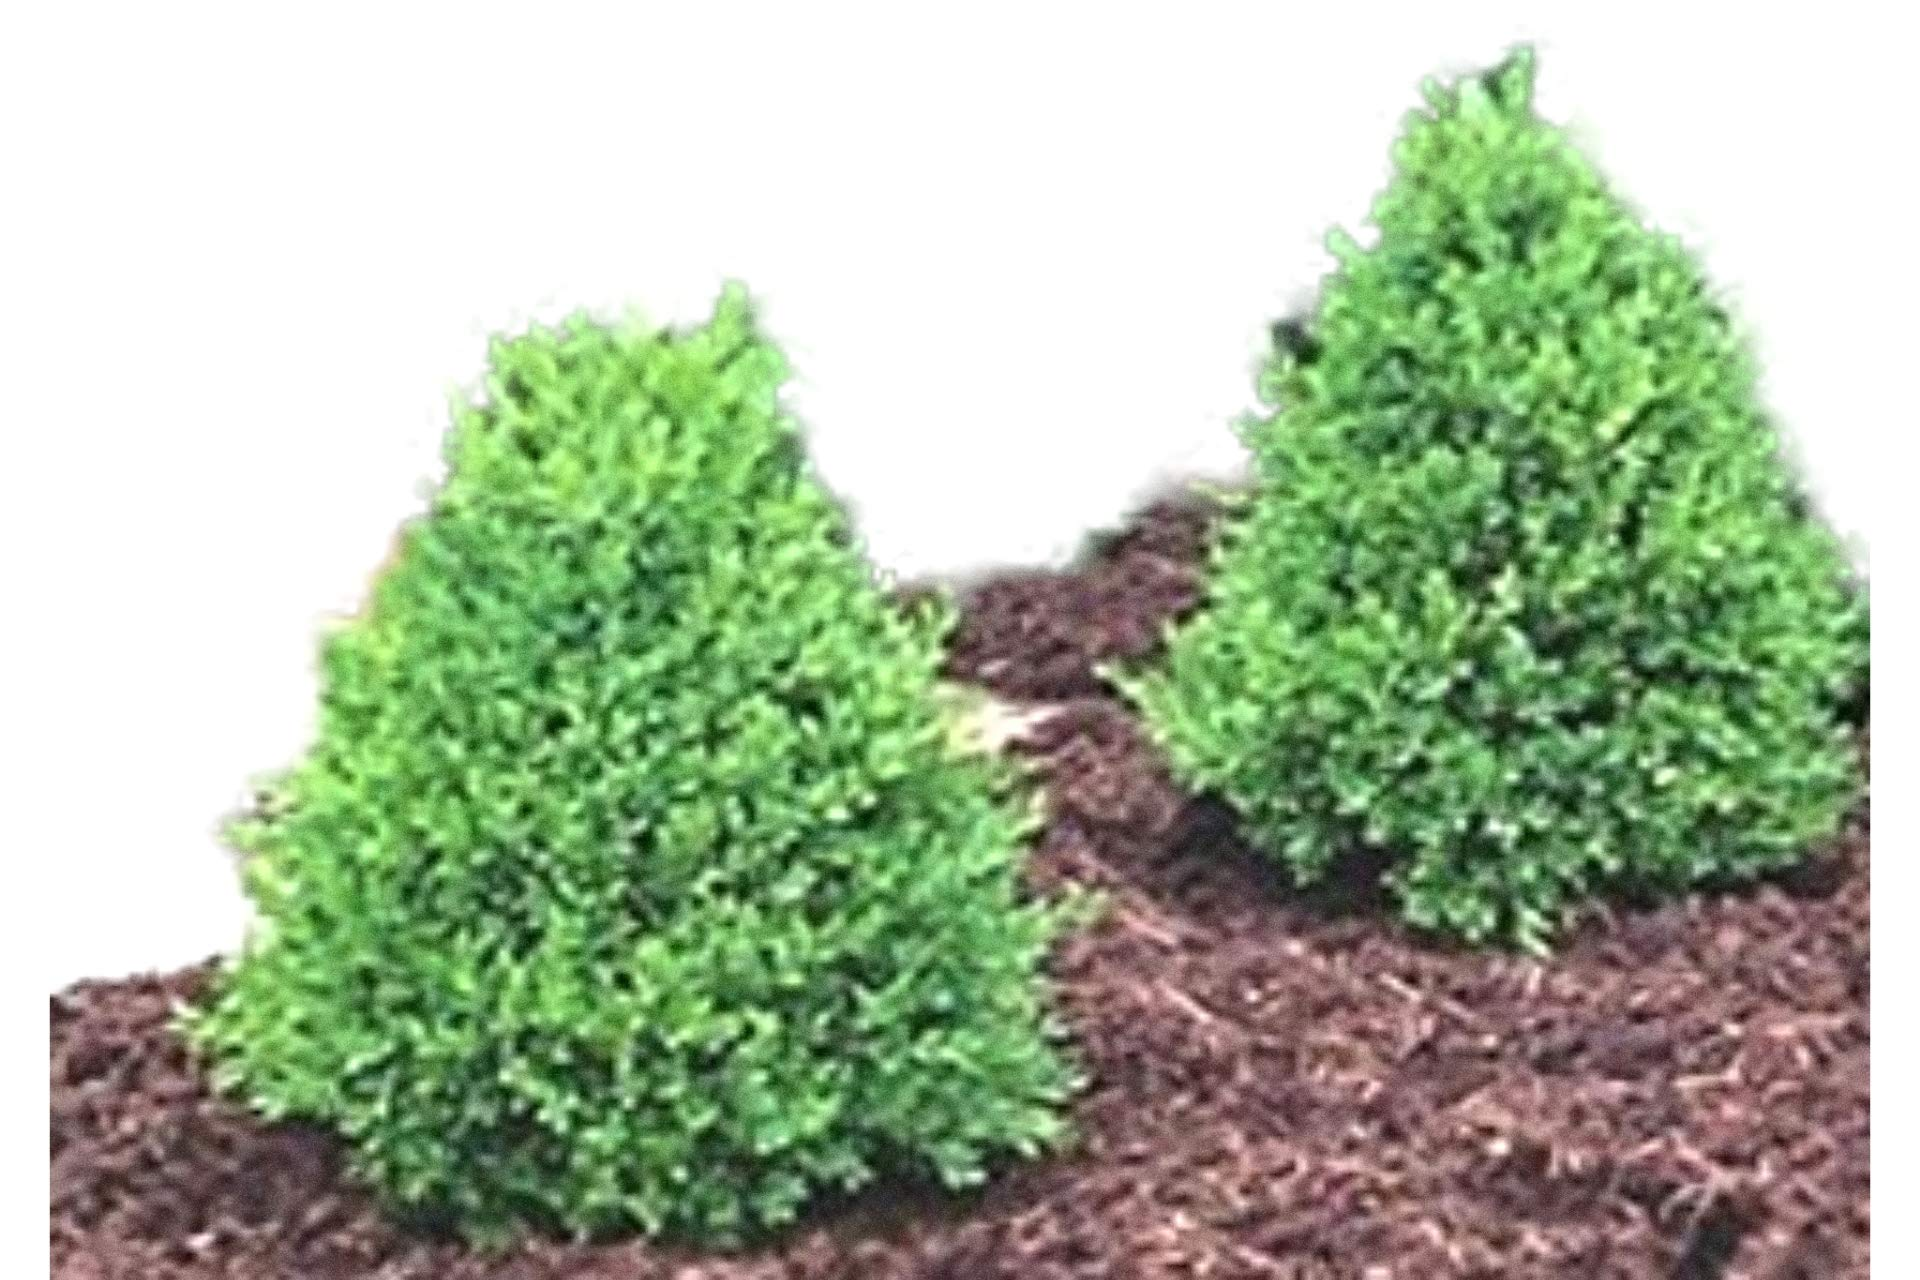 Green Mountain Boxwood - Lot of 10 Live Plants in Gallon Pots by DAS Farms by DAS Farms (Image #1)